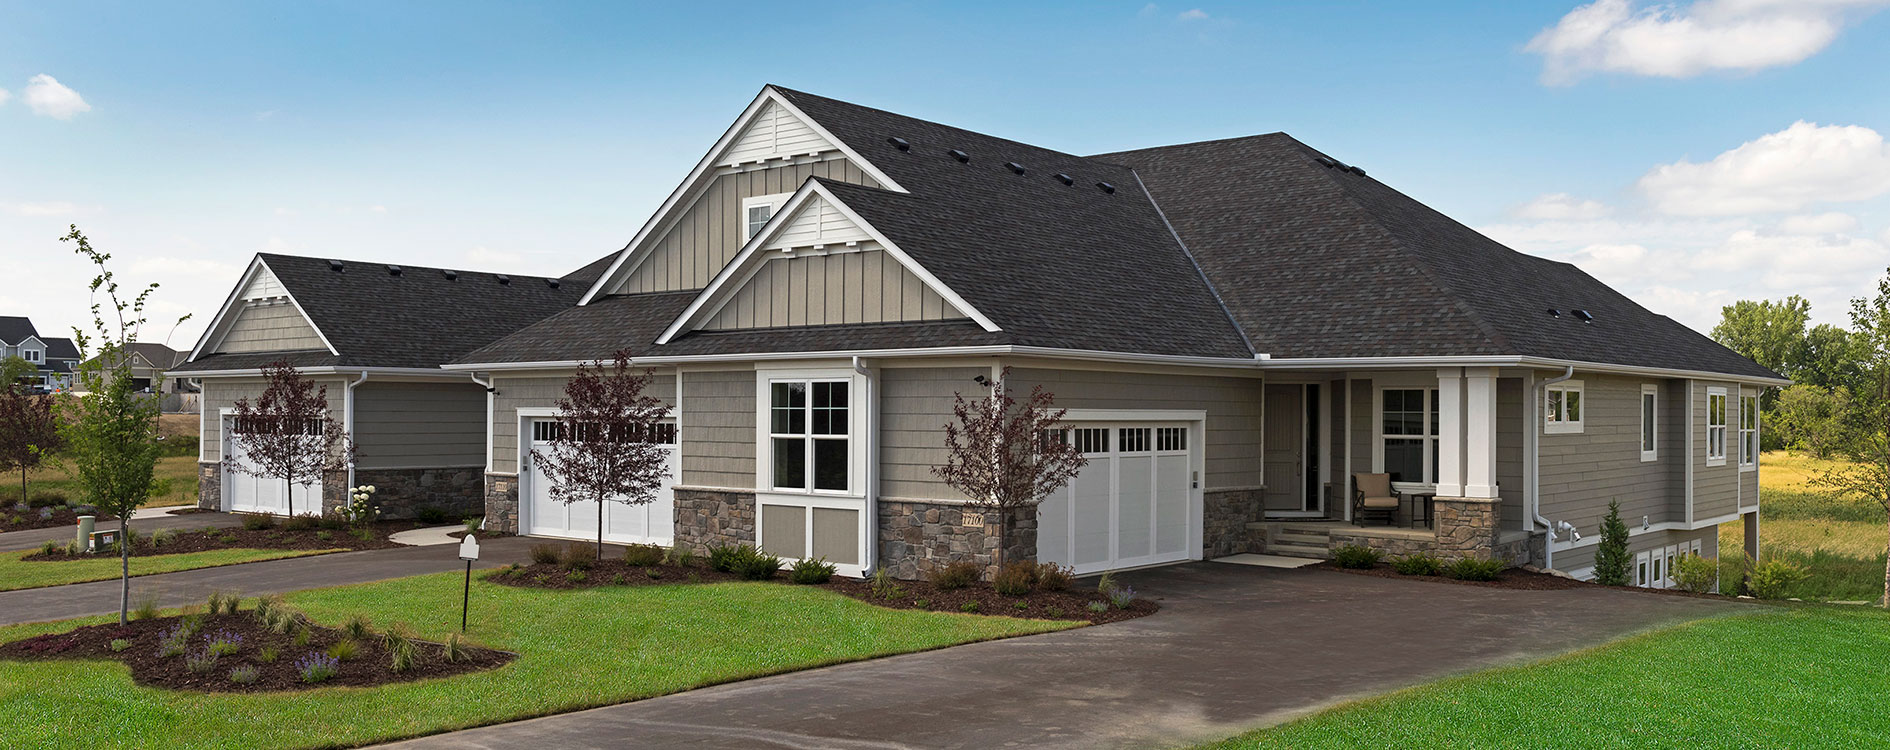 Villas-Townhomes_Elm-Creek-Meadows_Plymouth.jpg